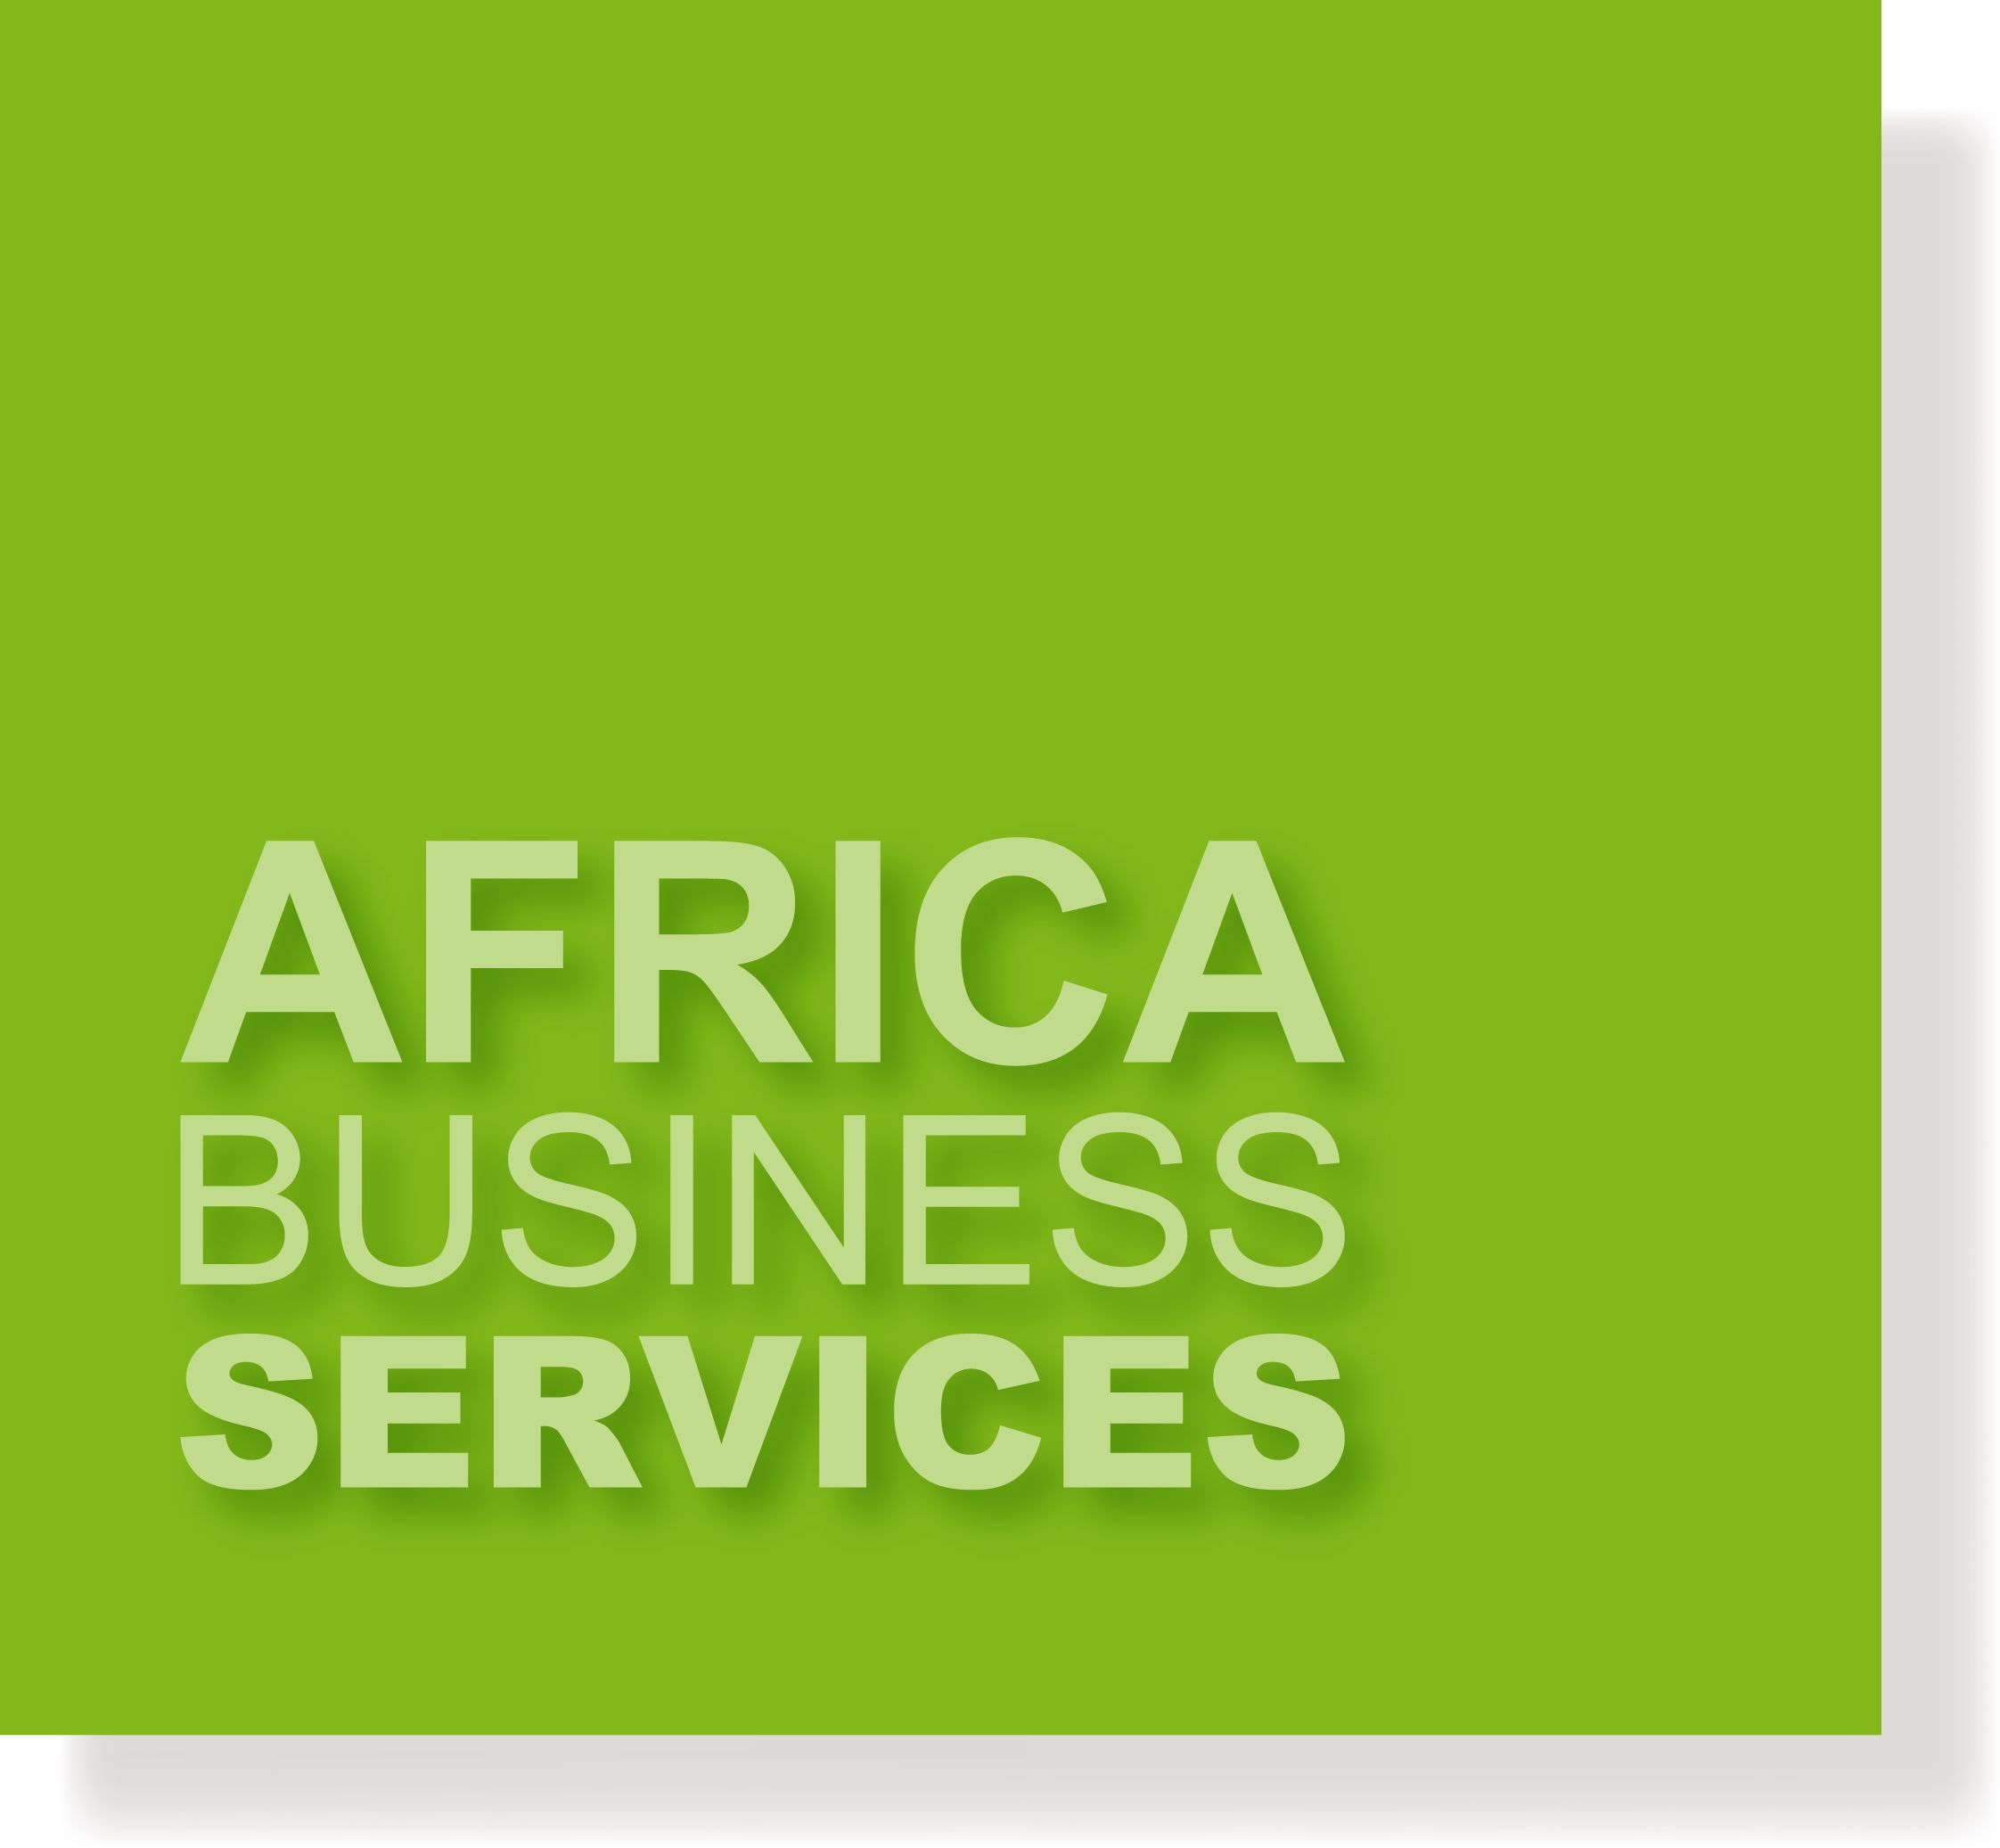 Africa business services business credit card home